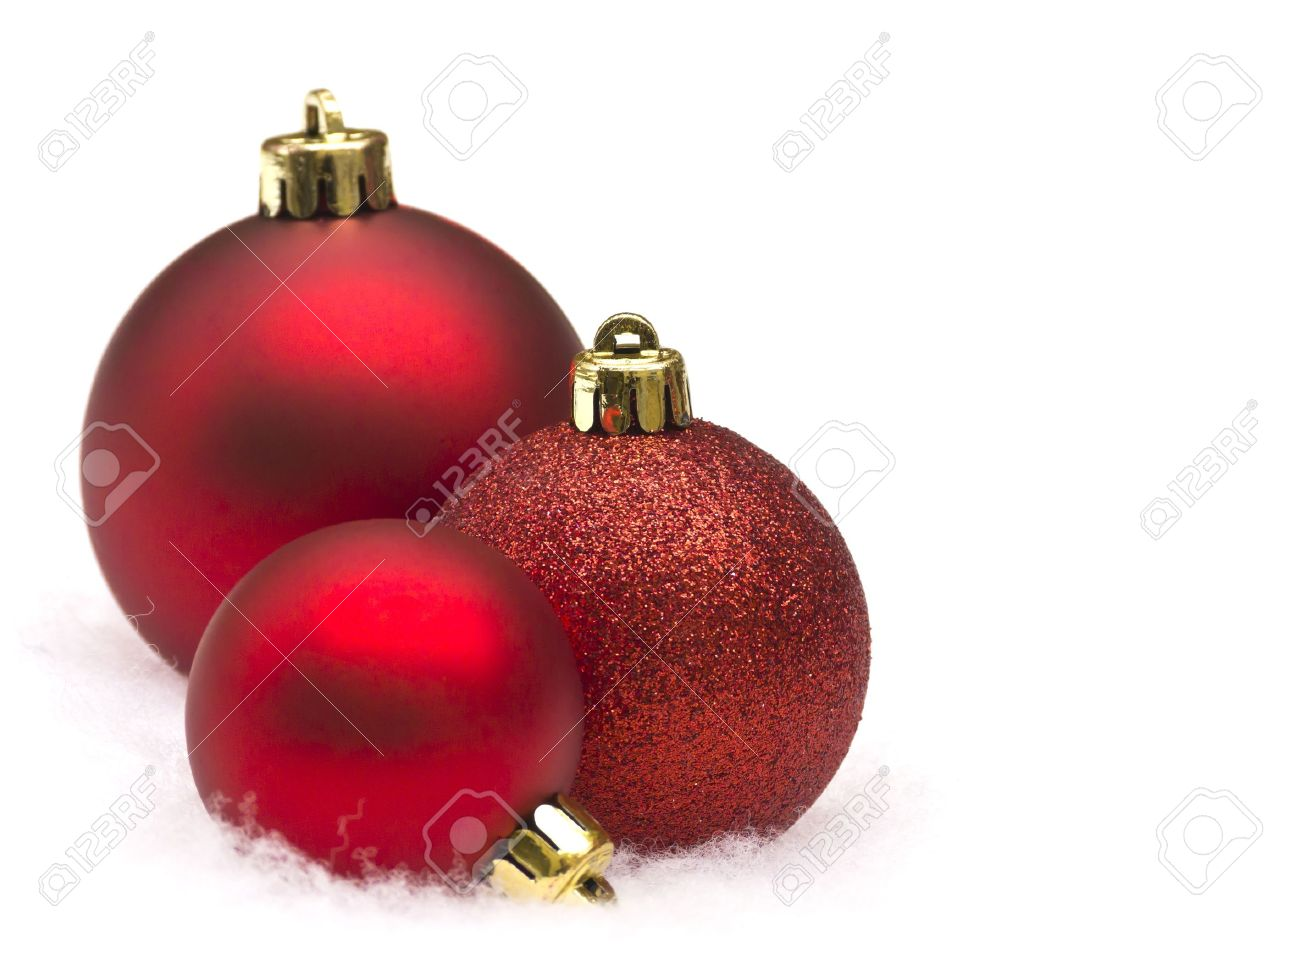 Red Christmas Balls On White Background Stock Photo, Picture And ...